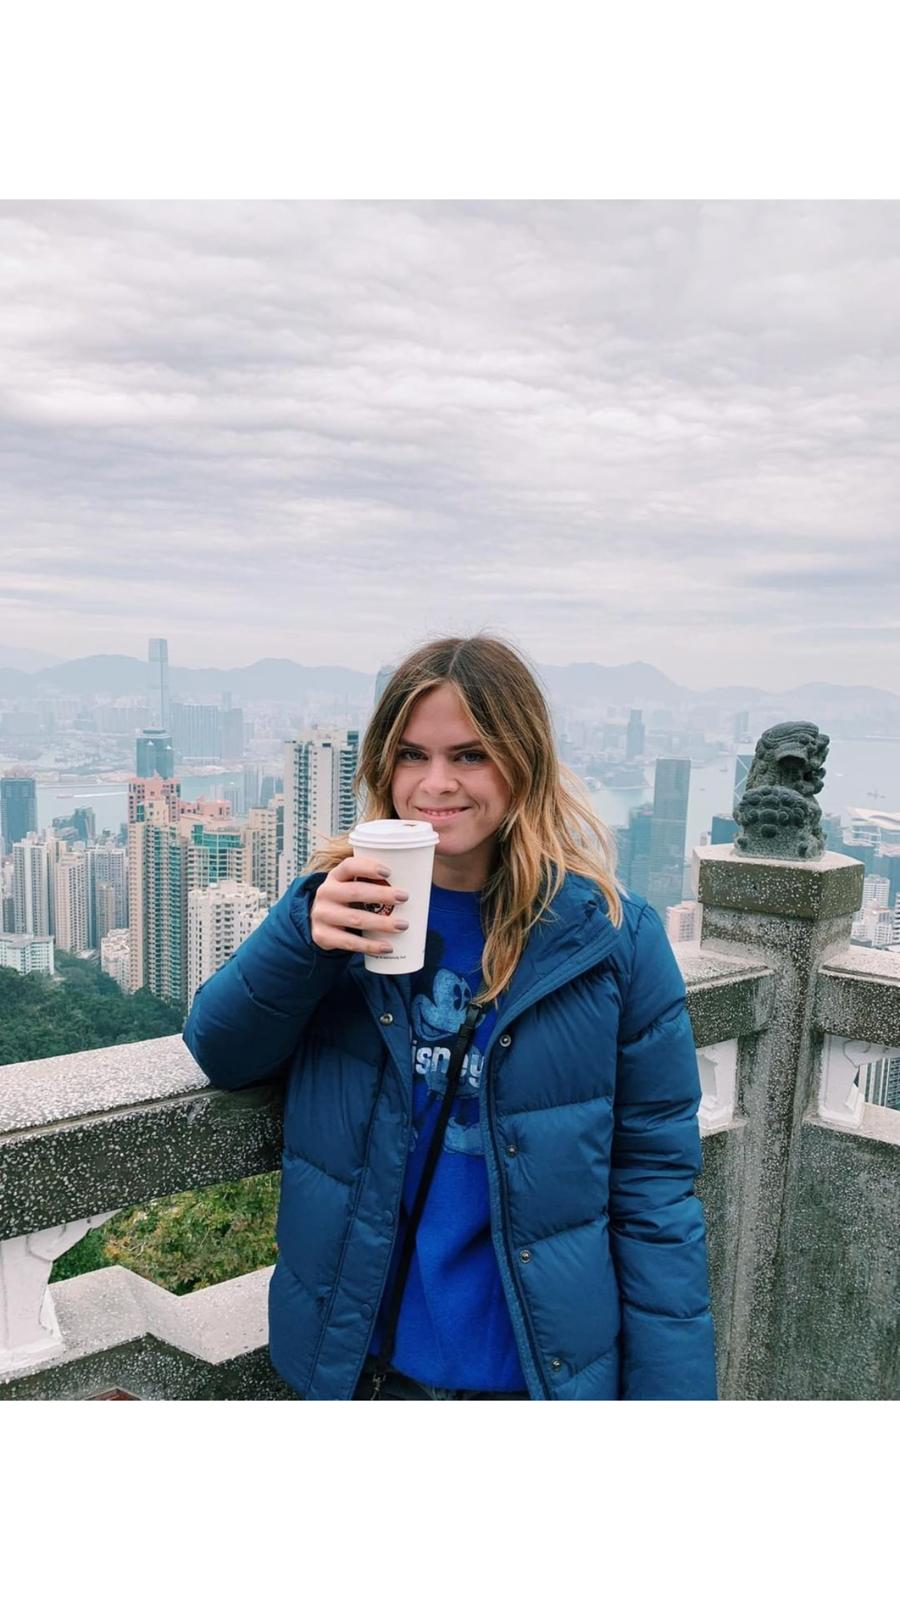 Danielle Gruen - Danielle Gruen, a Communication major at USC Annenberg embarked upon her journey to Hong Kong in Spring, 2019. Here's Danielle in her own words, talking about her experience in Hong Kong